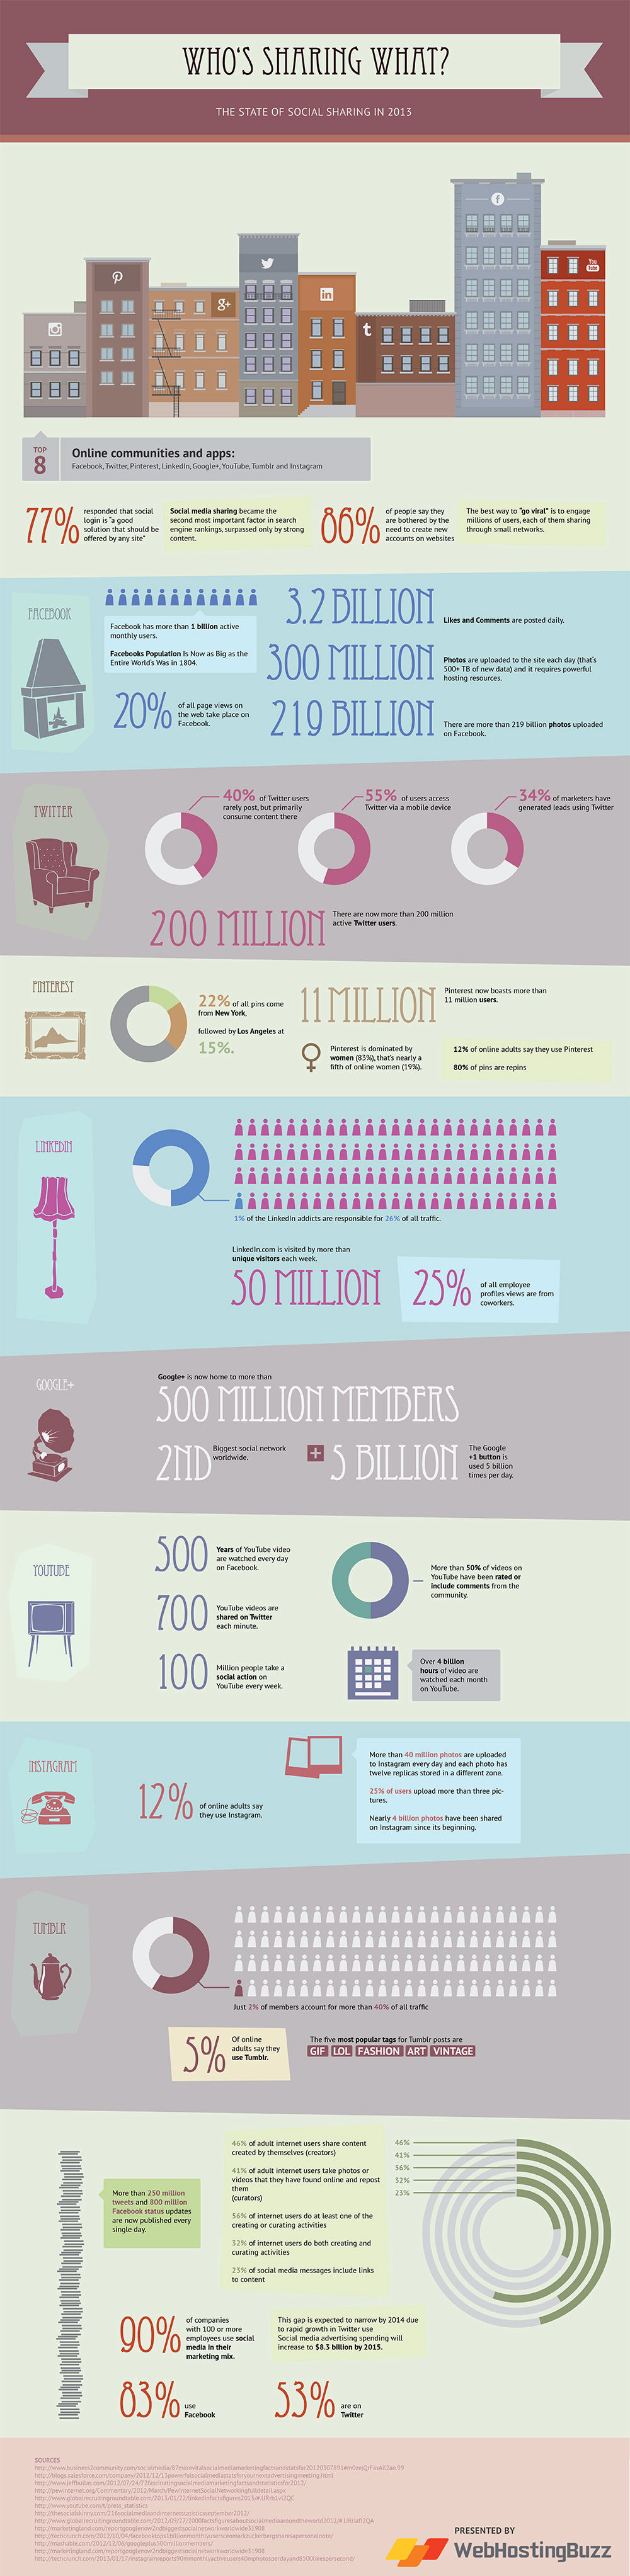 Who's Sharing What The State Of Social sharing In 2013